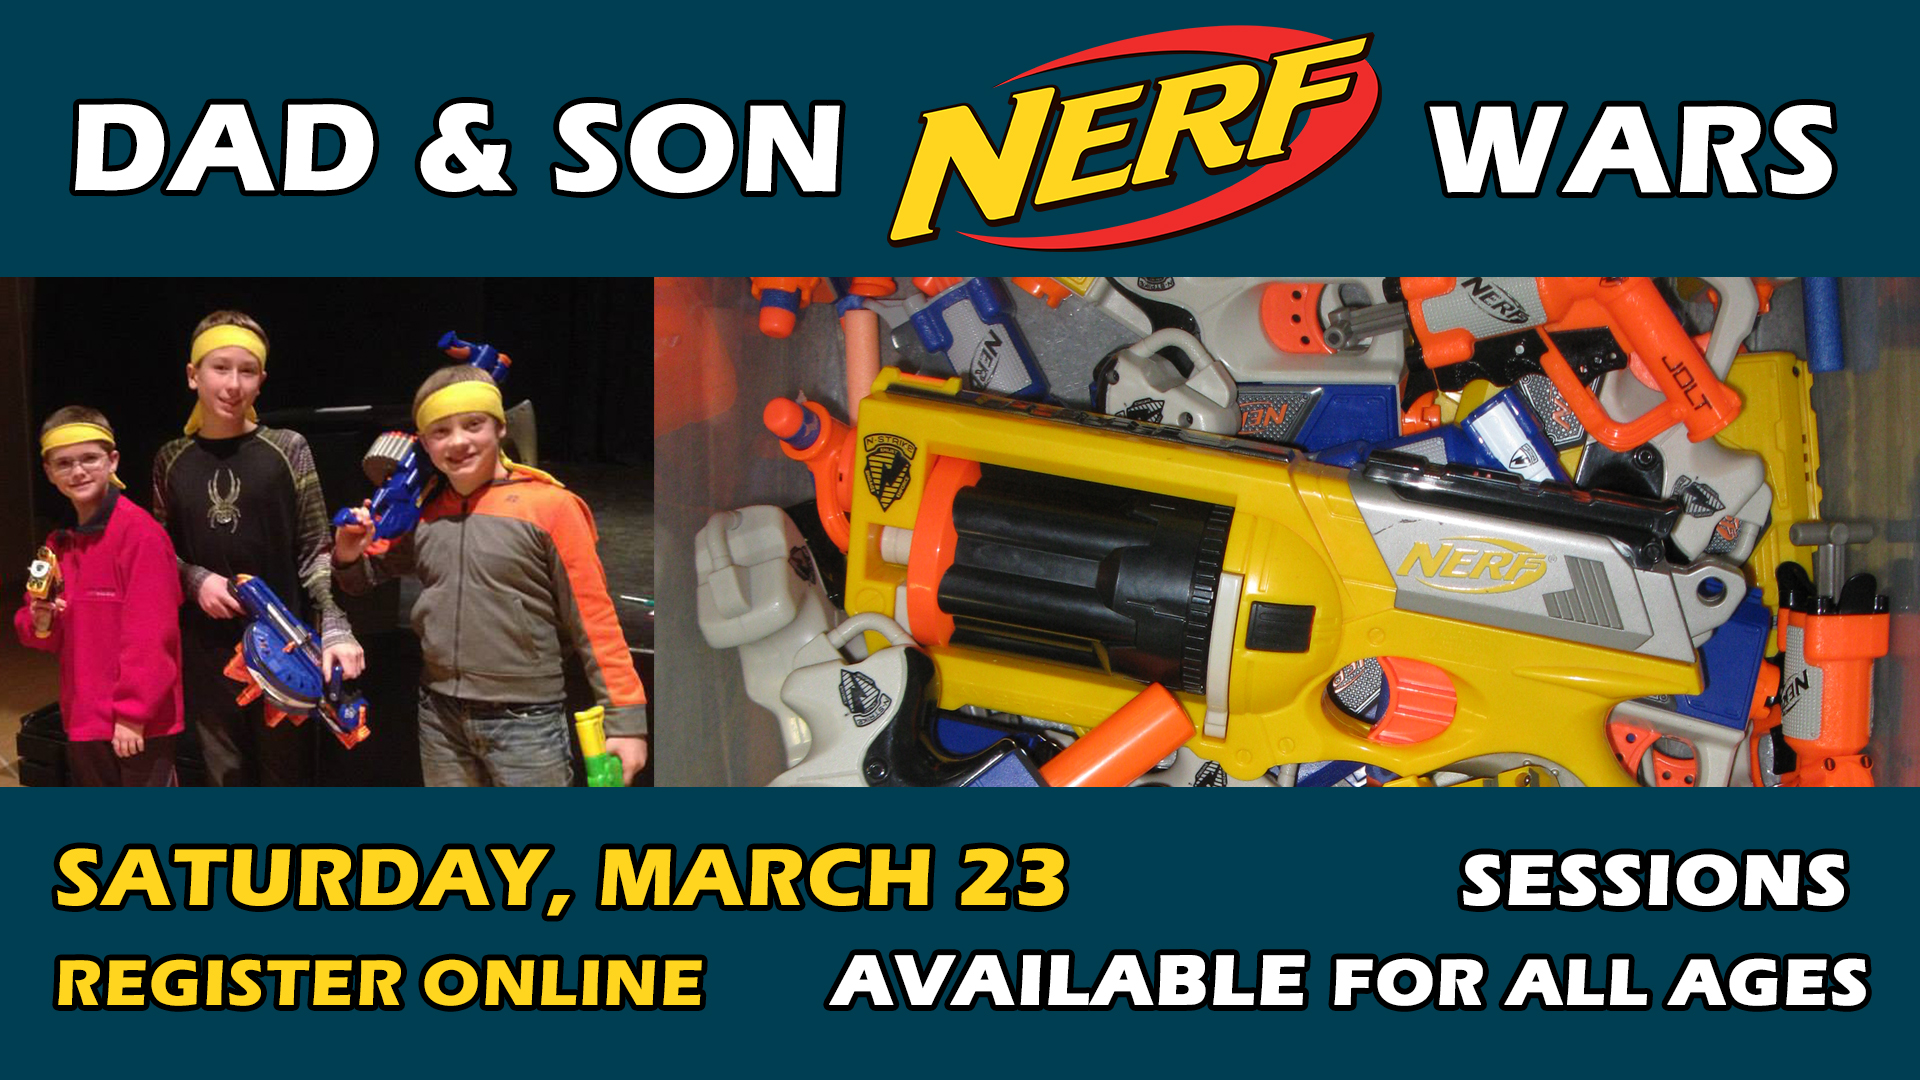 Dad and Son Nerf_02.17.19.jpg